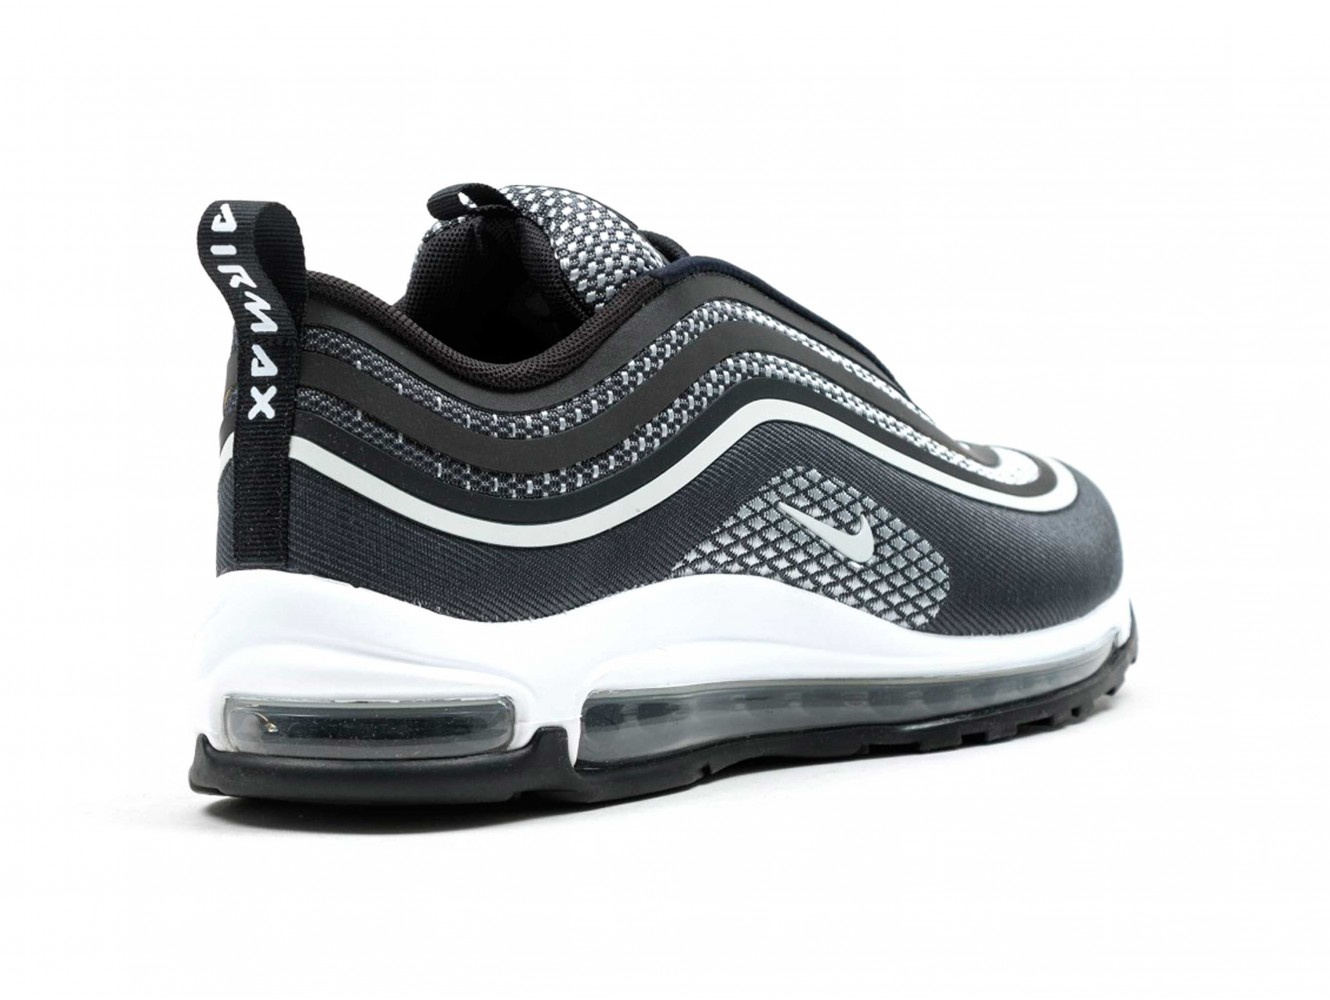 Nike Air Max 97 Ultra 17 Black White | 918356 001